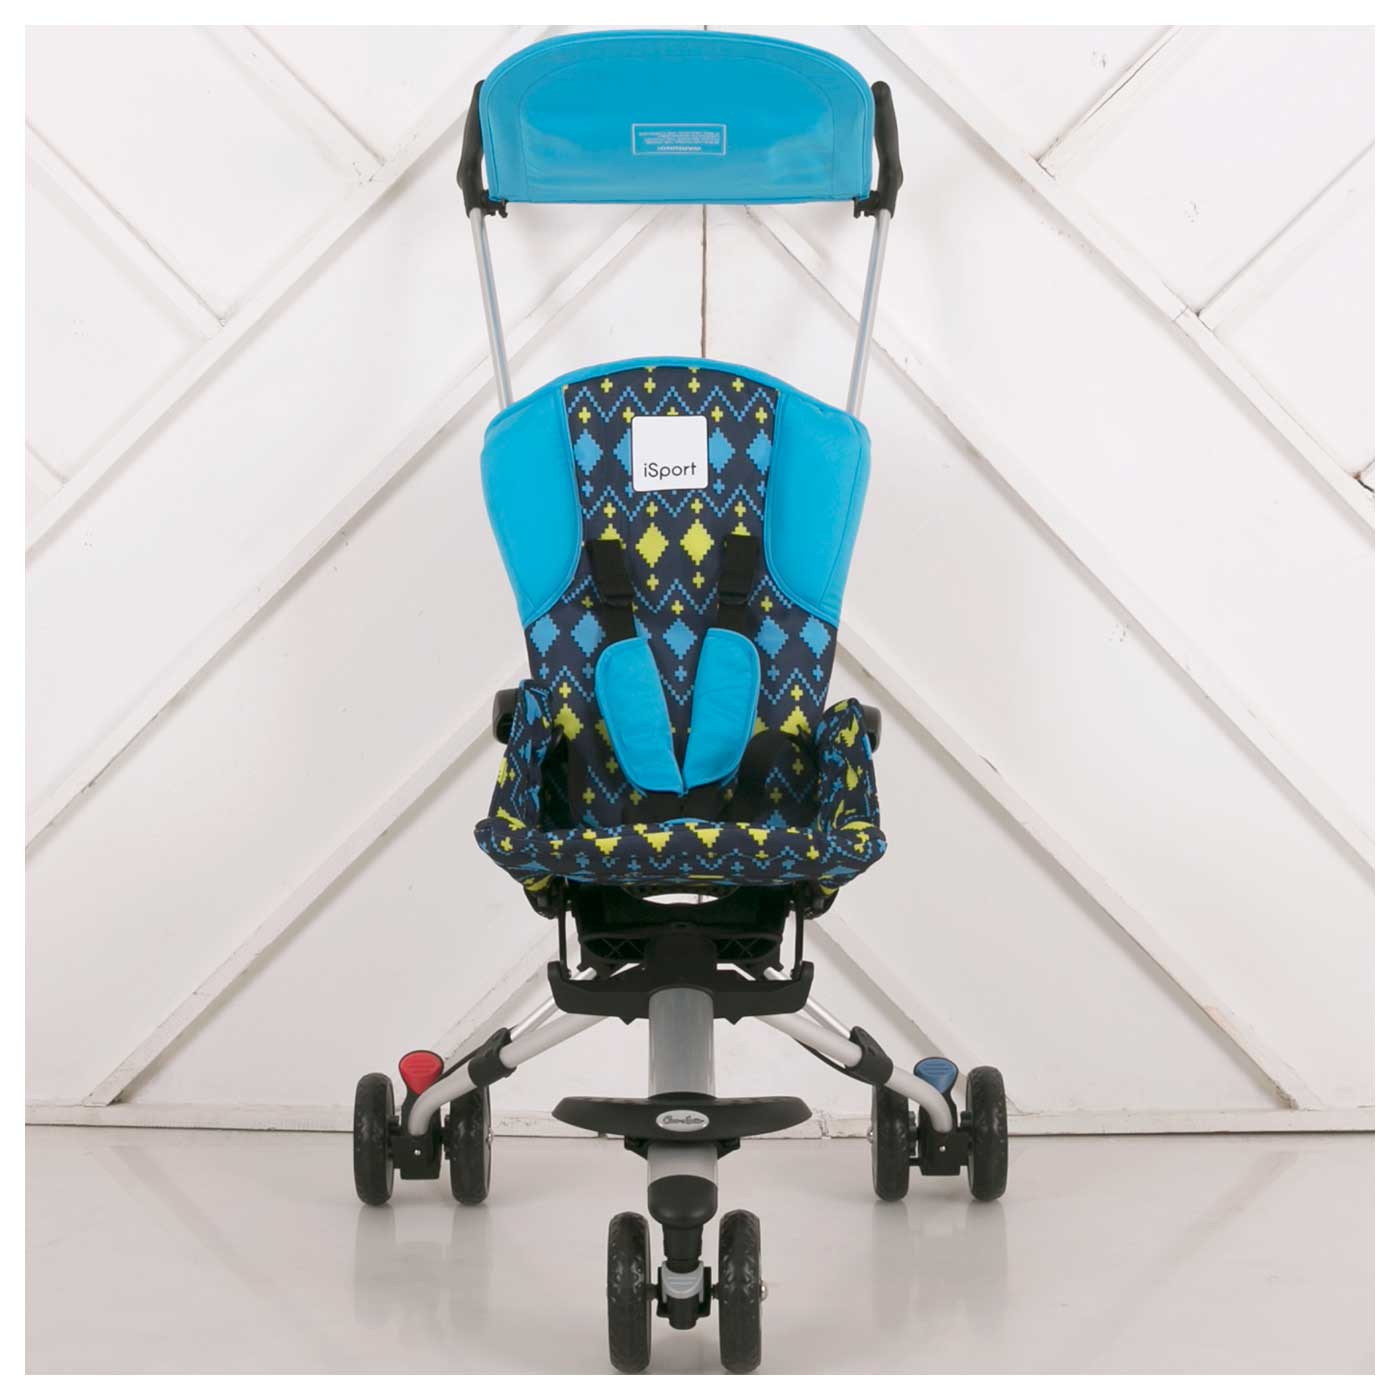 Cocolatte Stroller CL 8 ISport LImited Edition Blue C